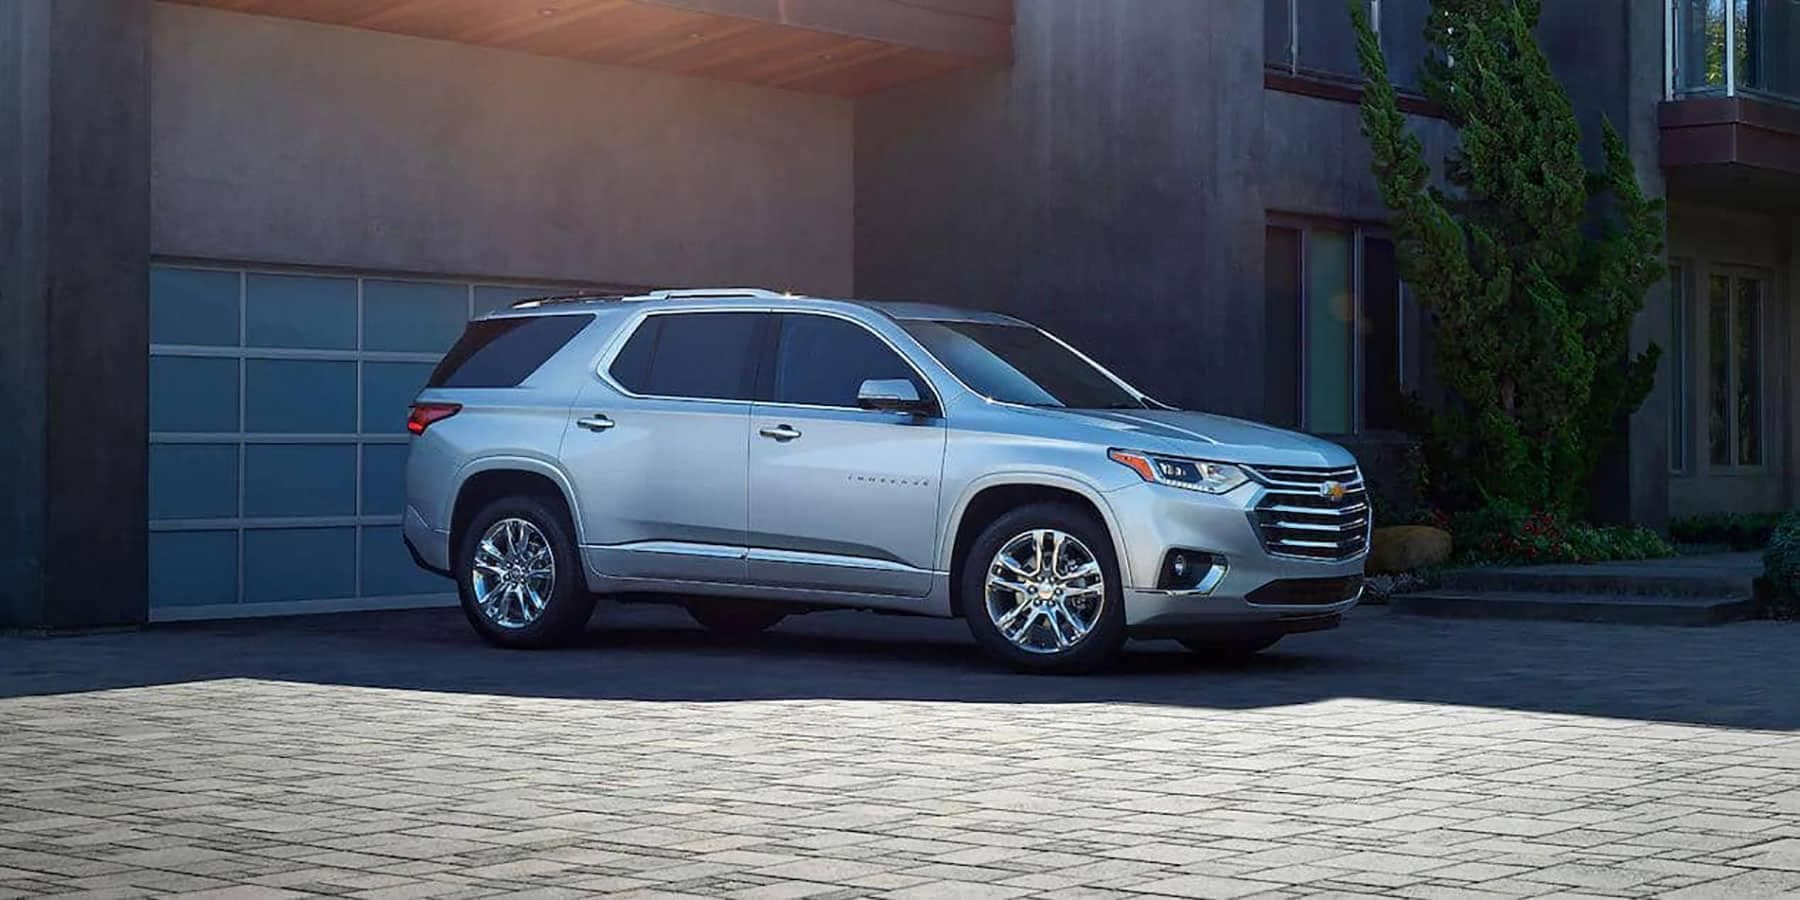 2019 Chevrolet Traverse sideview